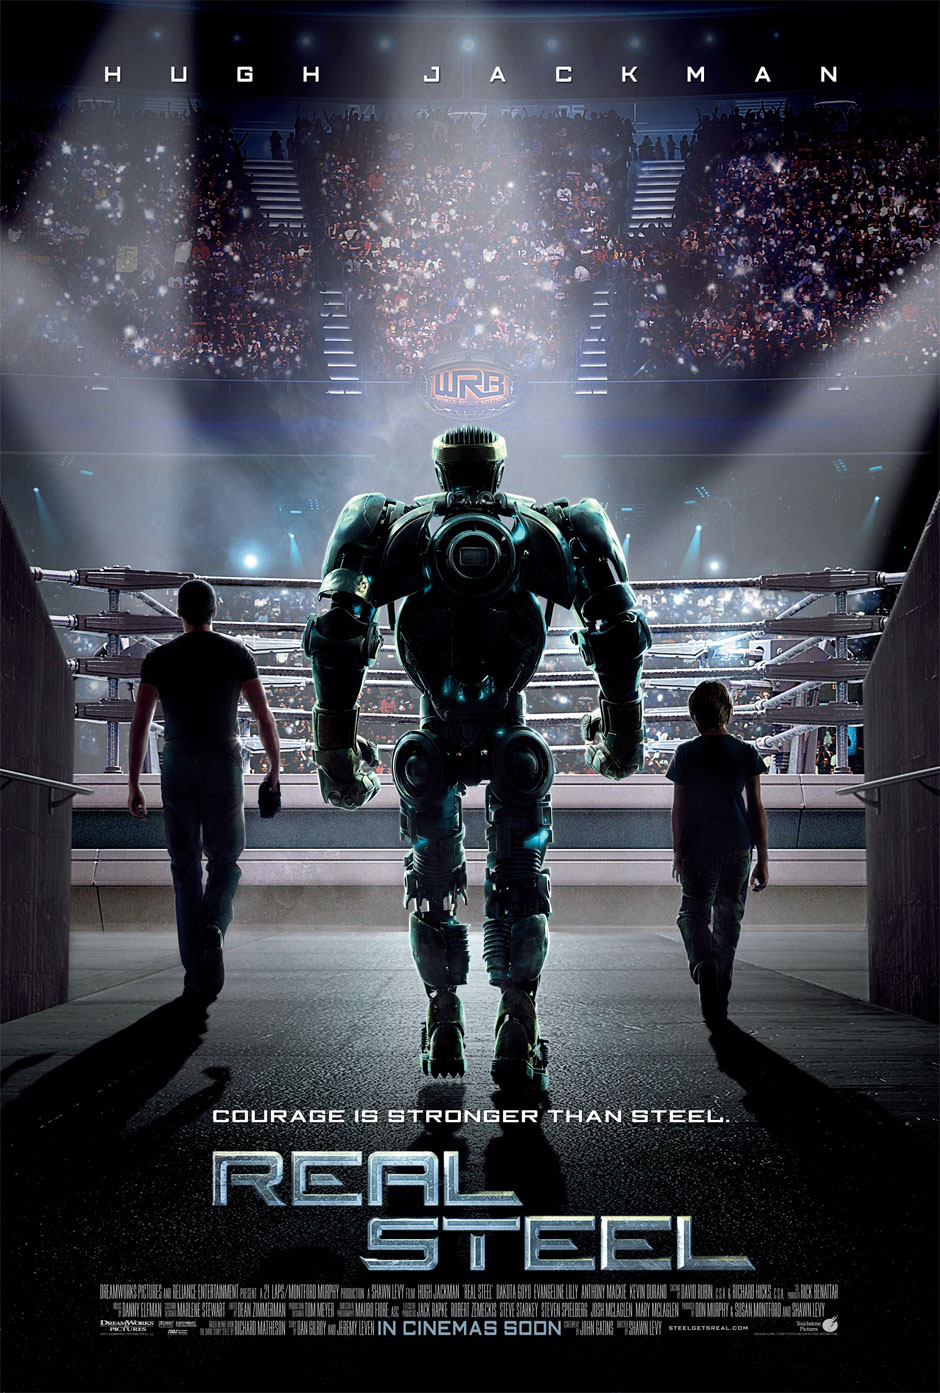 REAL STEEL (2011)- SCI-FI ACTION | MOVIE TRAILER | MOVIE WALLPAPERS